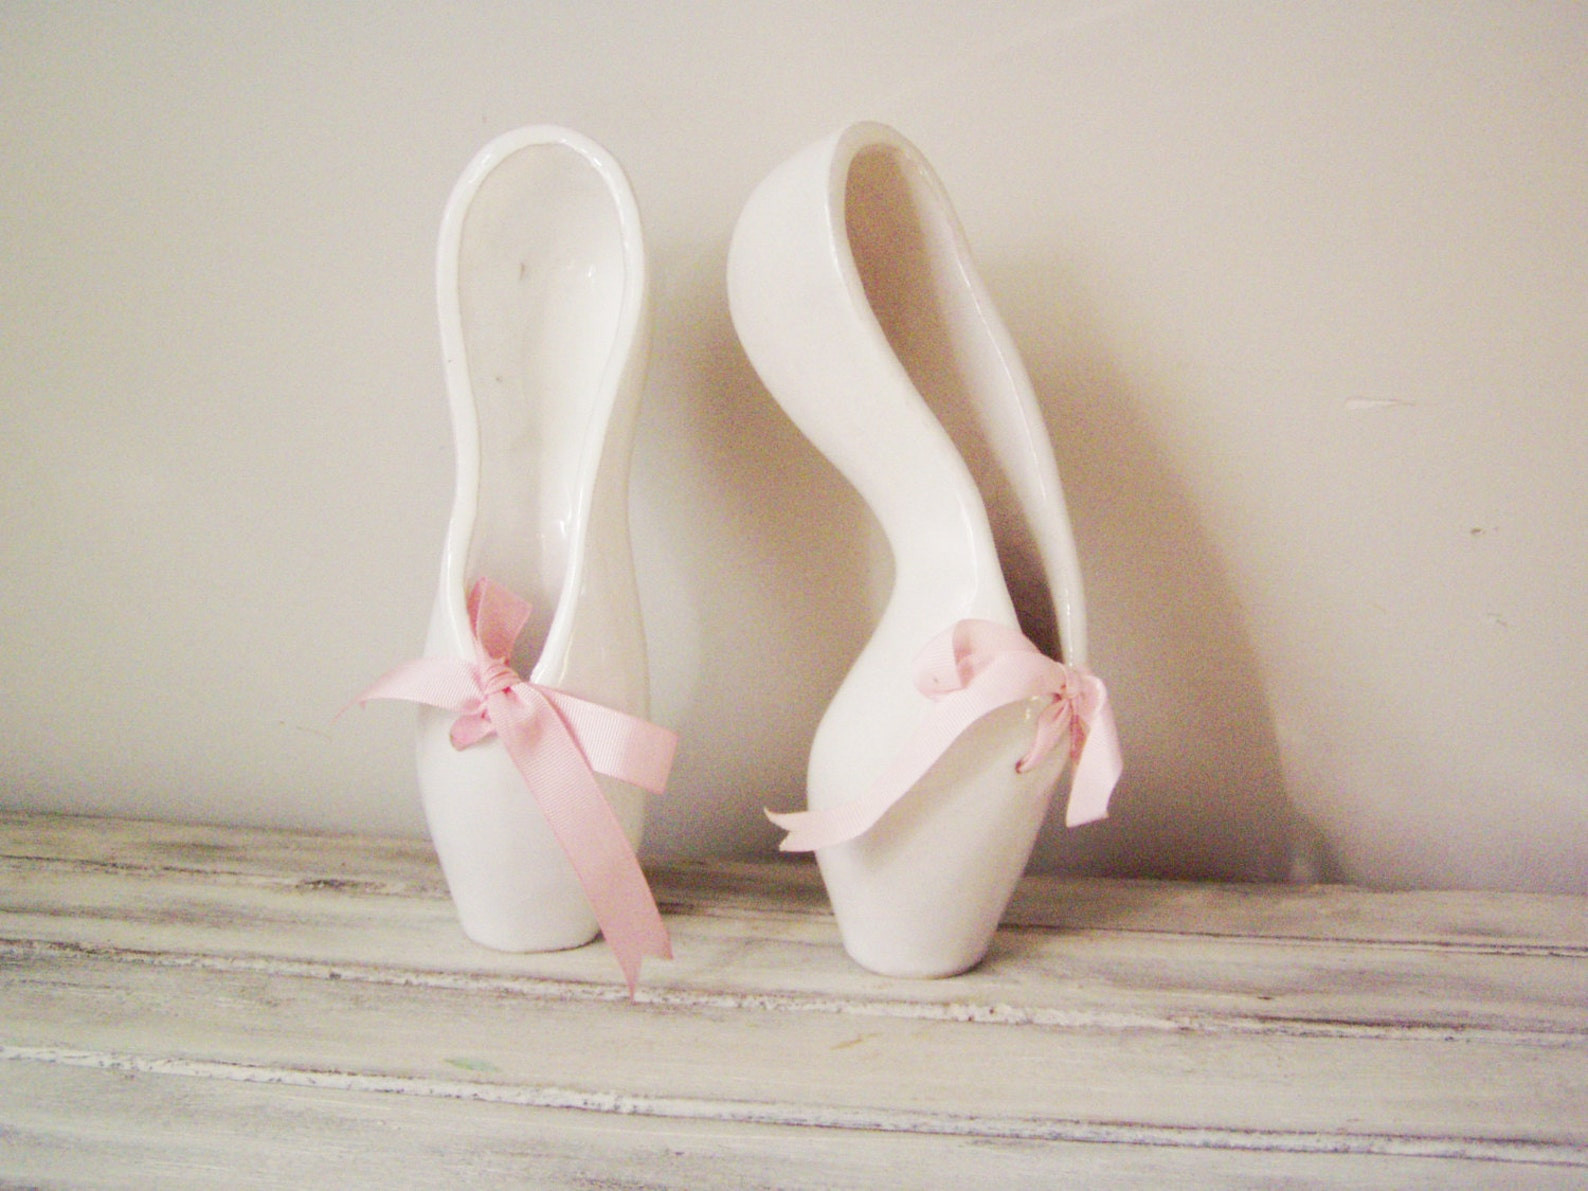 ballerina shoes sculpture, ceramic ballerina shoes of high fire, stoneware clay in milky white with satin, pink ribbons, ballet